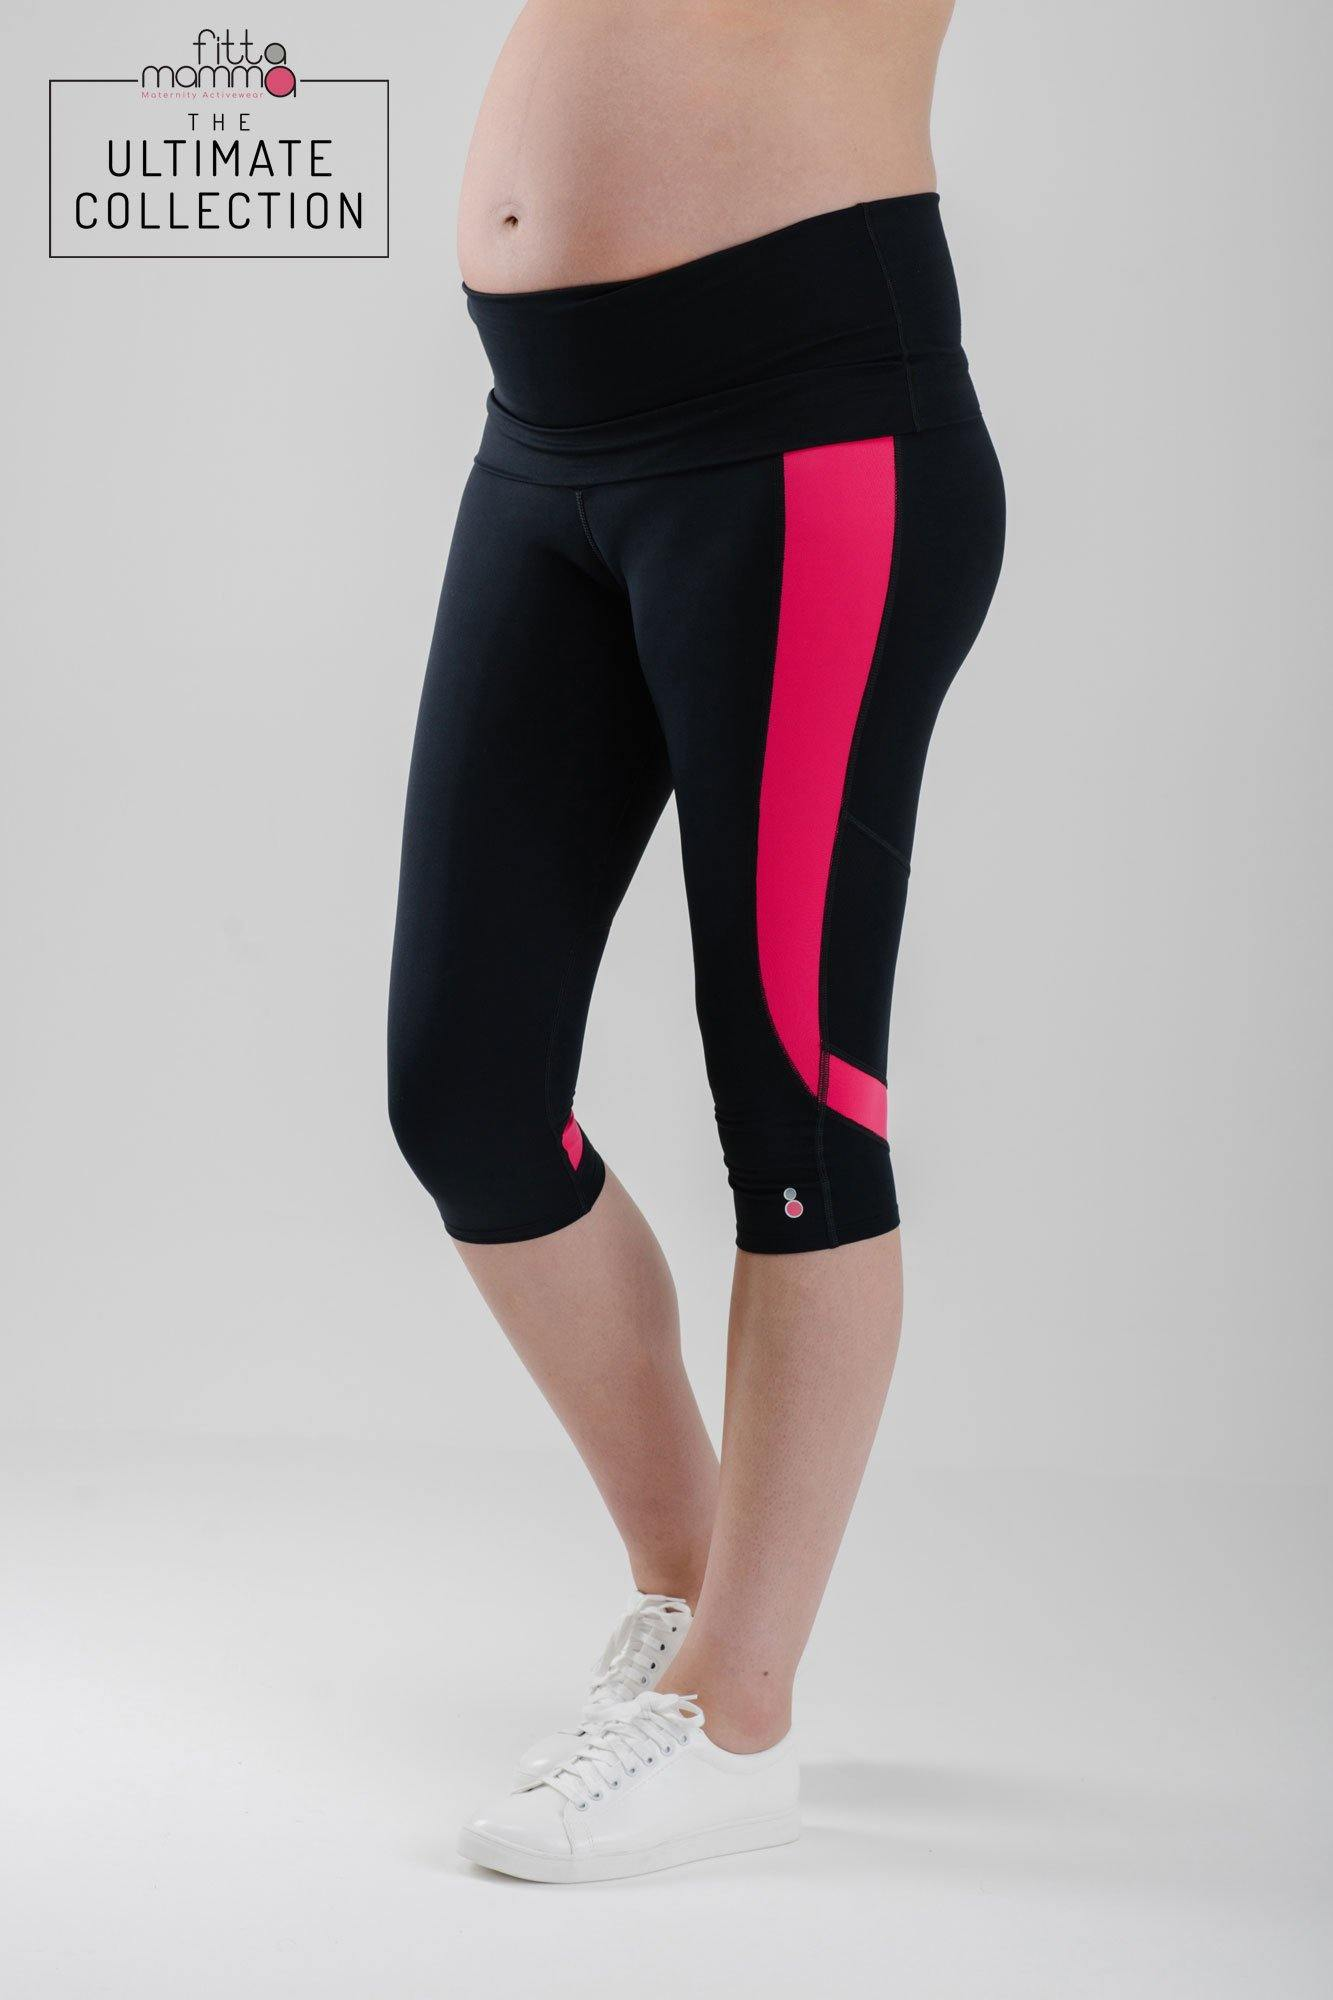 Ultimate Maternity Fitness Capri Leggings - FittaMamma